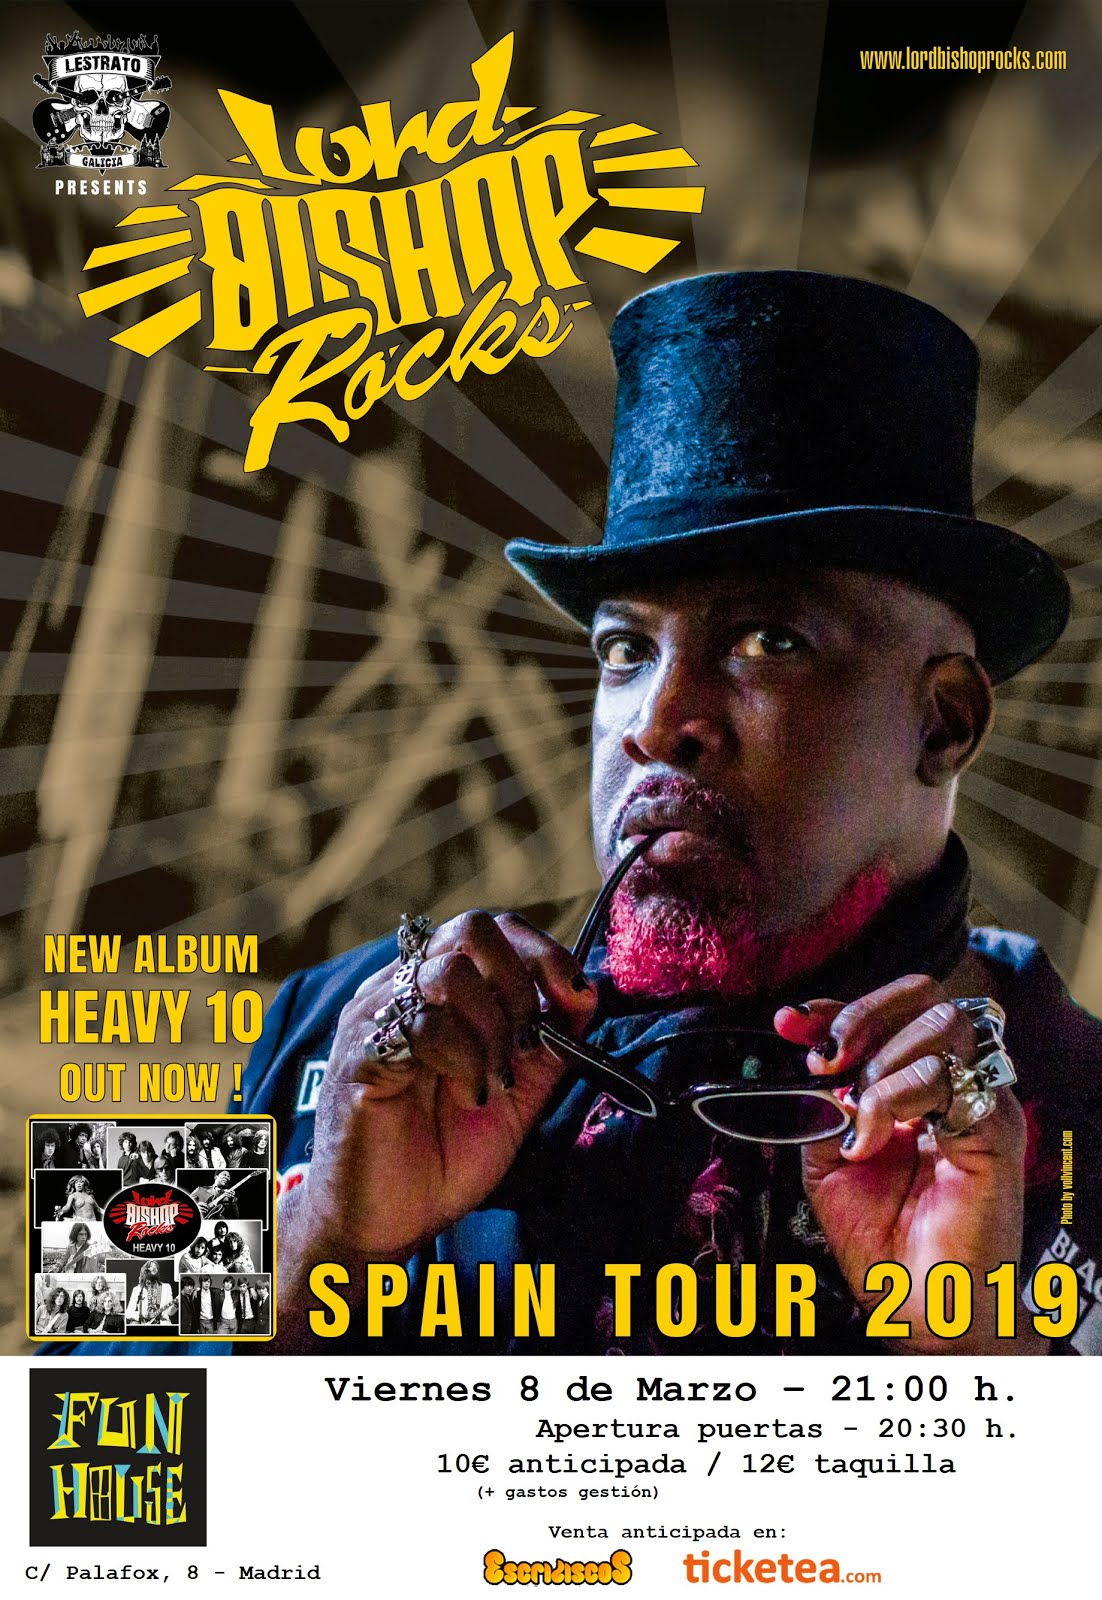 Lord Bishop Rocks - 08/03/2019 - Fun House (Madrid)